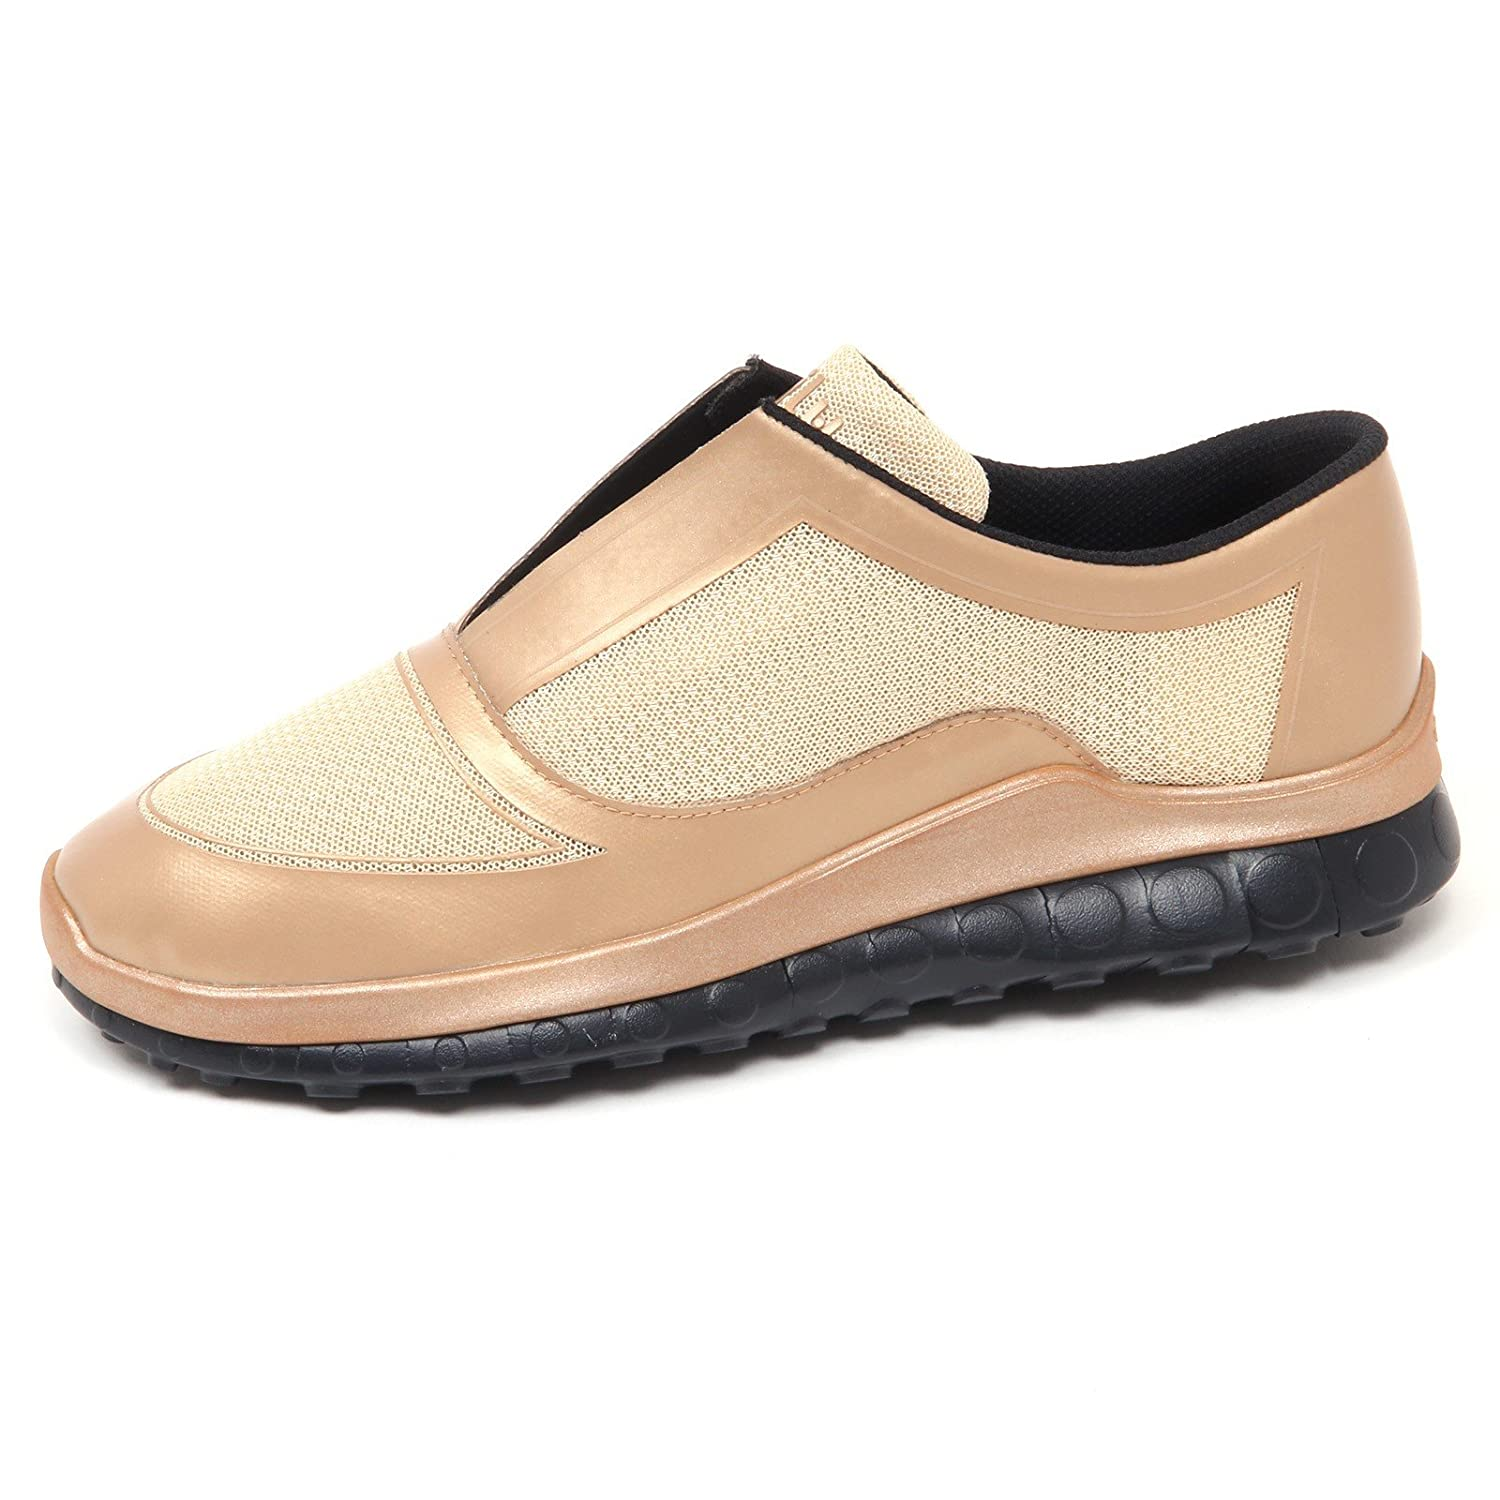 Ccilu E7976 (Without Box) Turnschuhe herren beige Gold Horizon Slip on schuhe Man